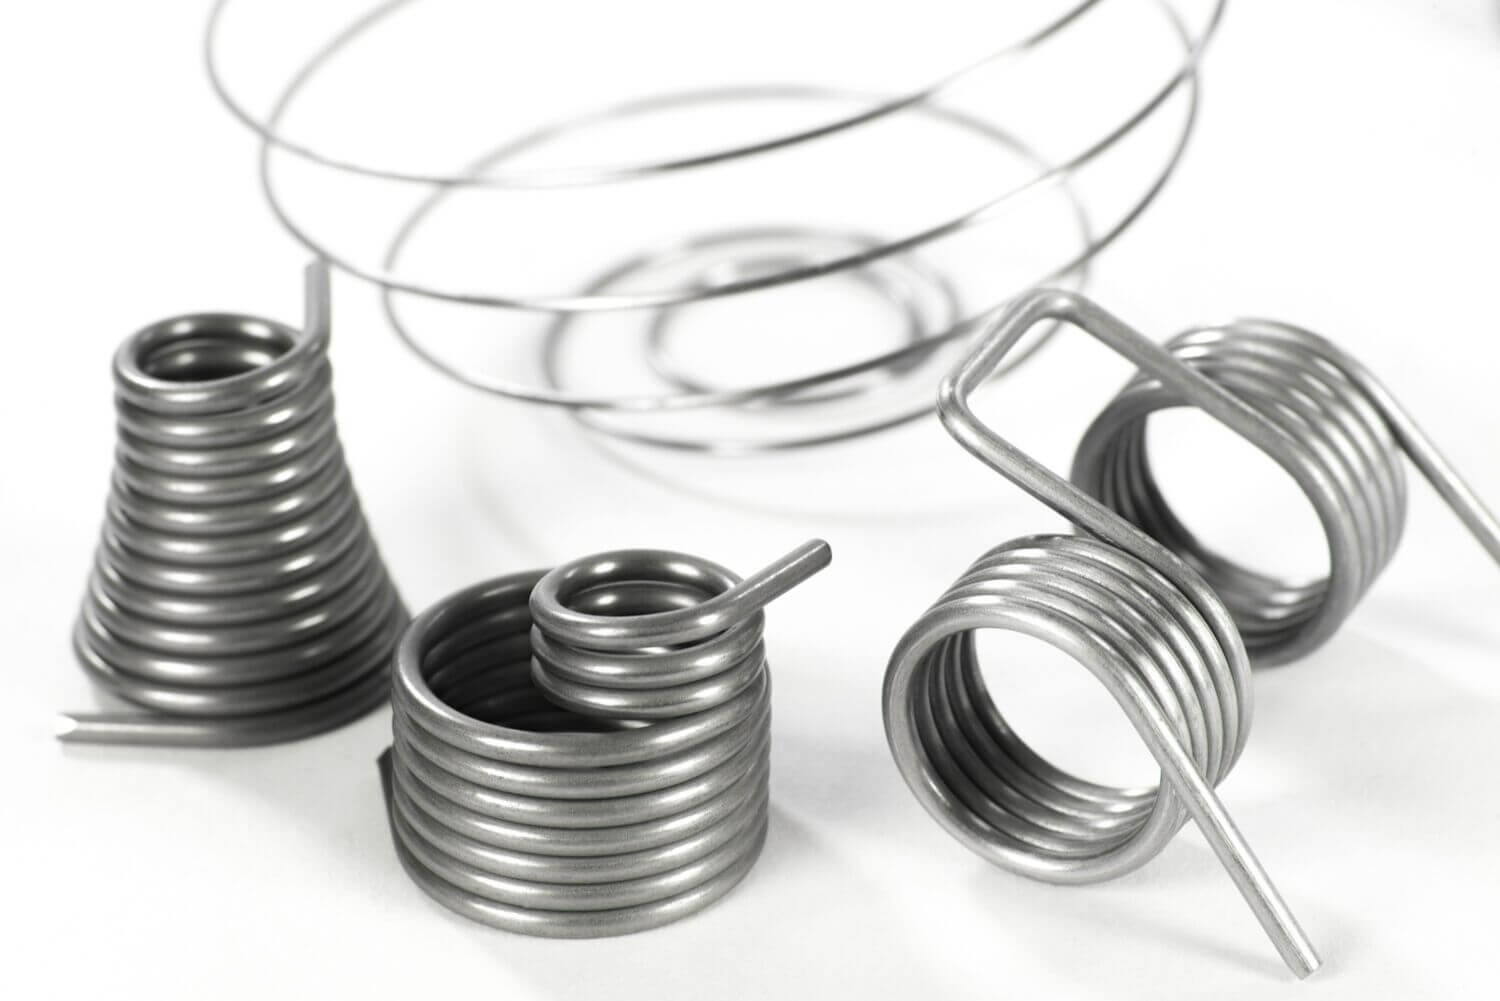 Wire spiral and wire springs